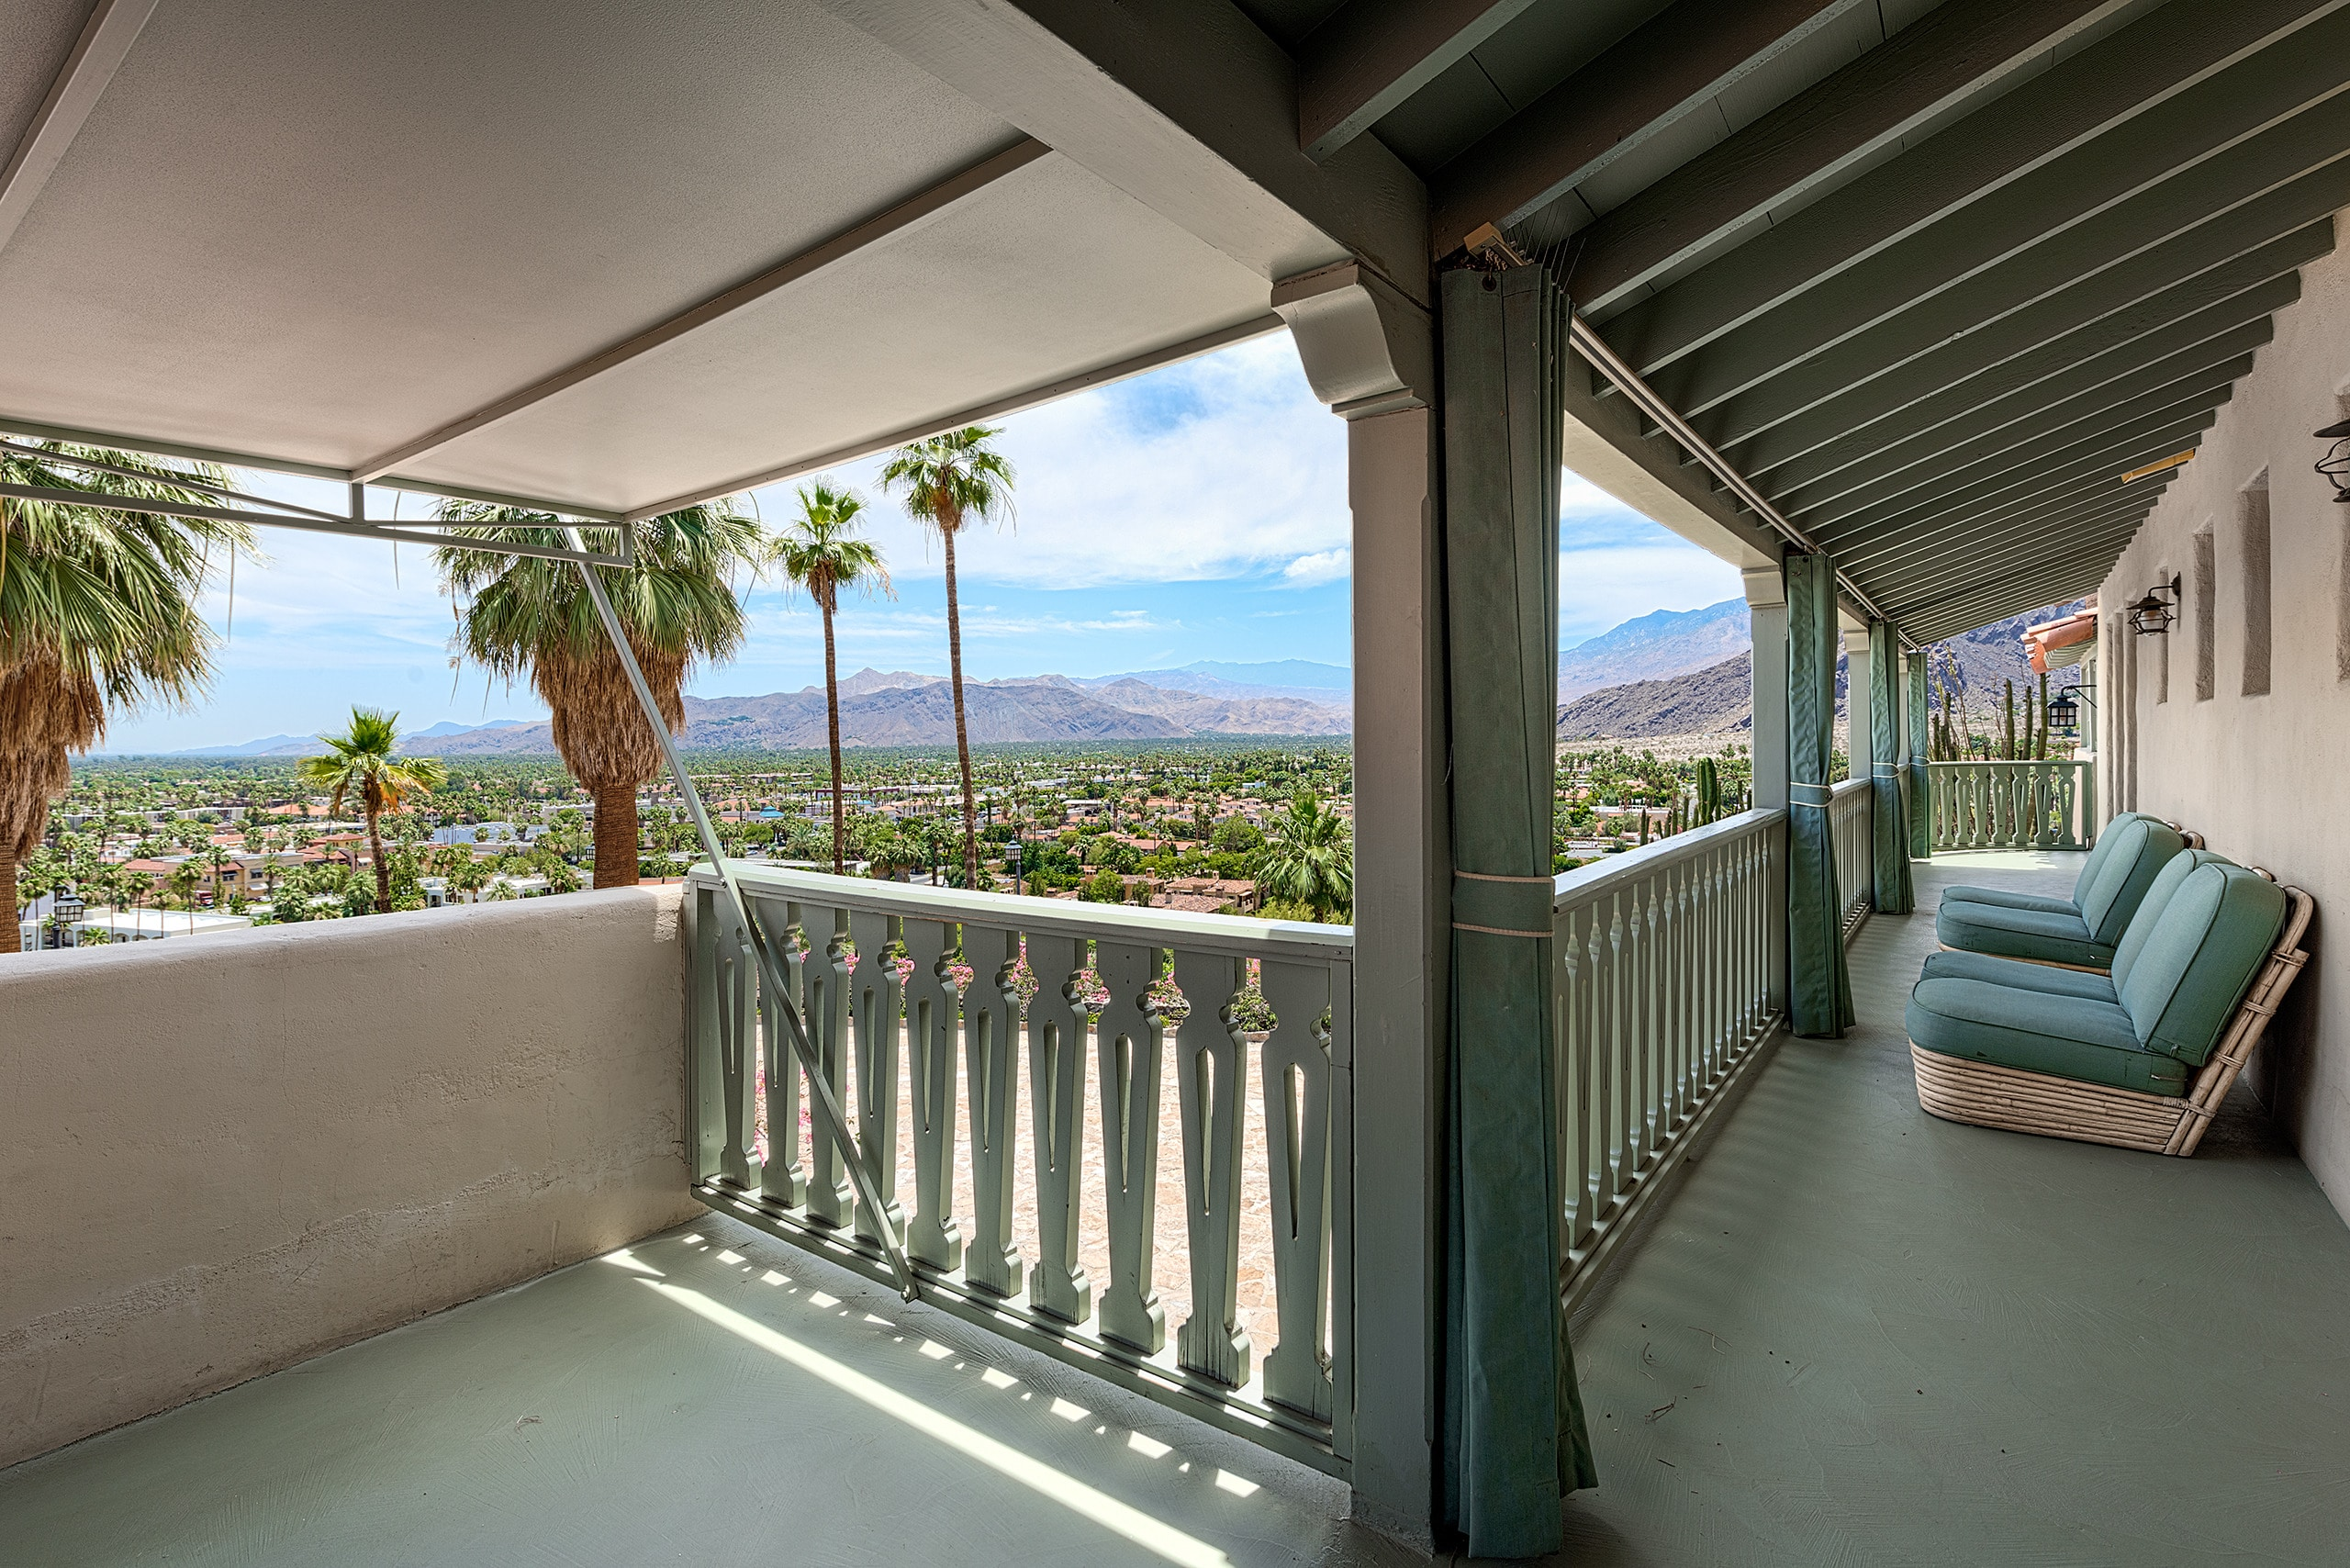 The O'Donnell House is a premiu Palm Springs wedding venue.